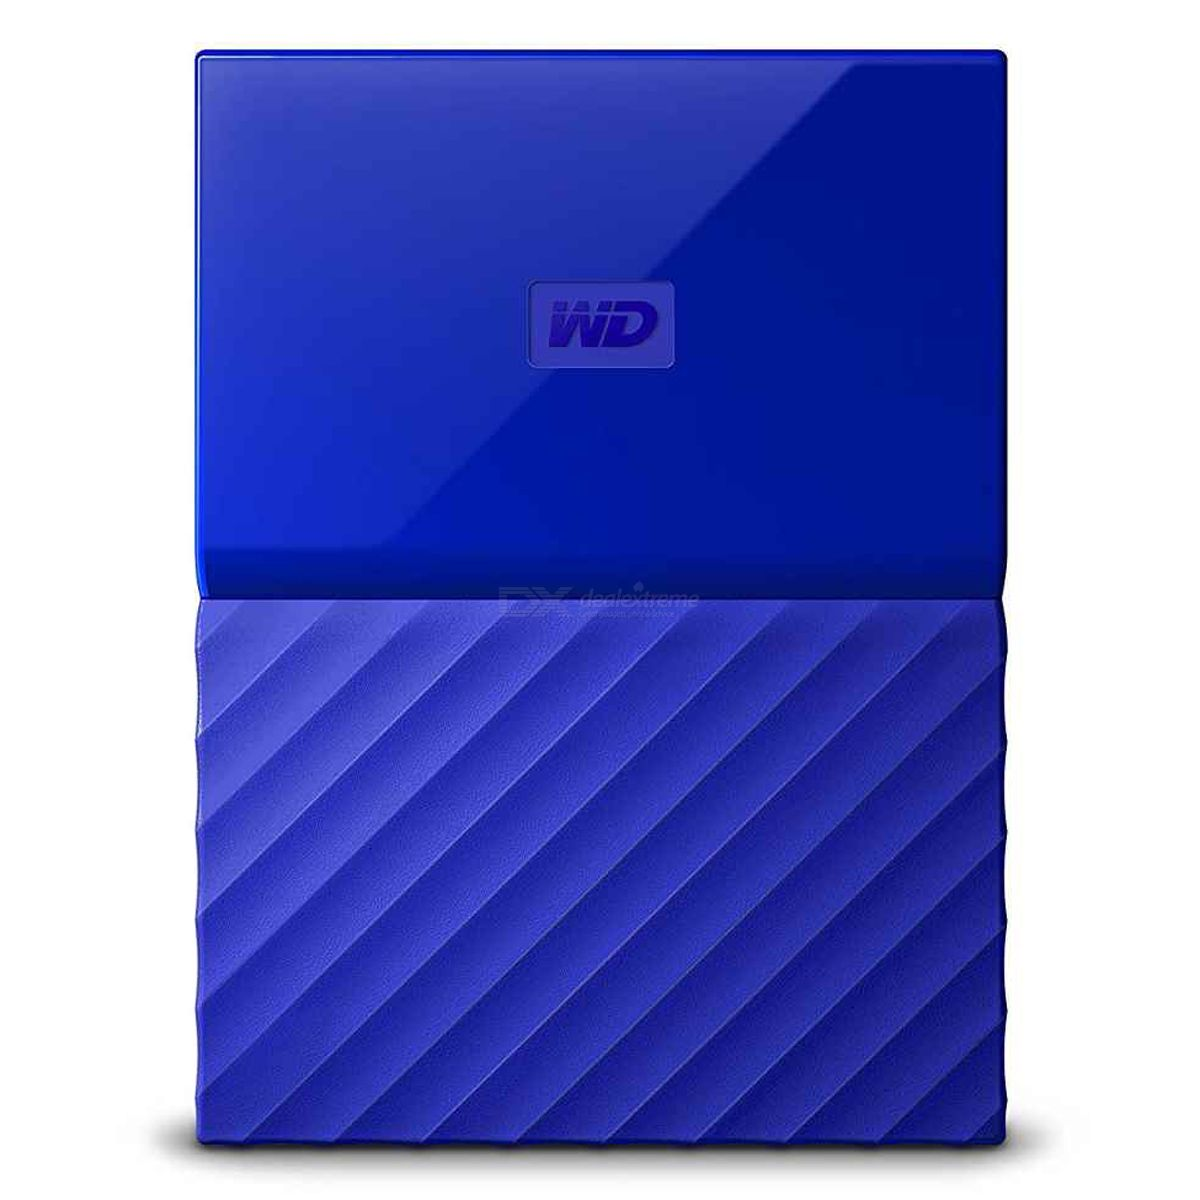 WD My Passport 1TB 2.5quot External Drive USB3.0 WDBYNN0010BBL - Blue